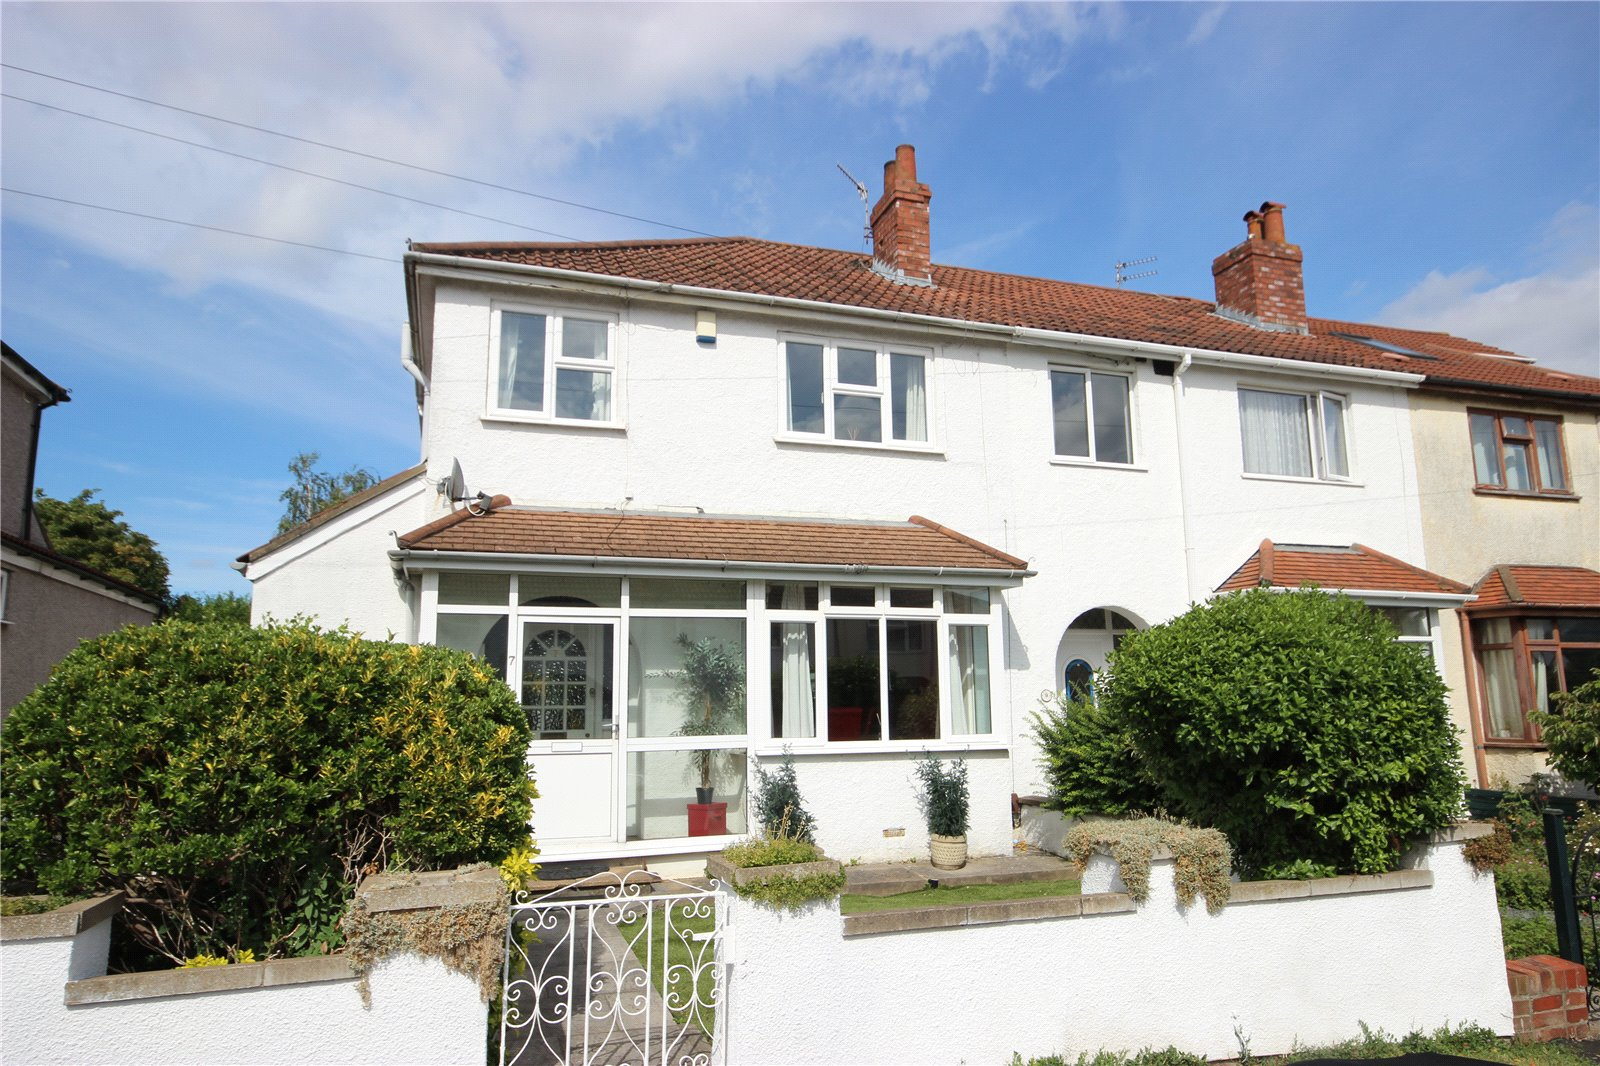 3 Bedrooms Detached House for sale in Woodchester Road Westbury-On-Trym Bristol BS10